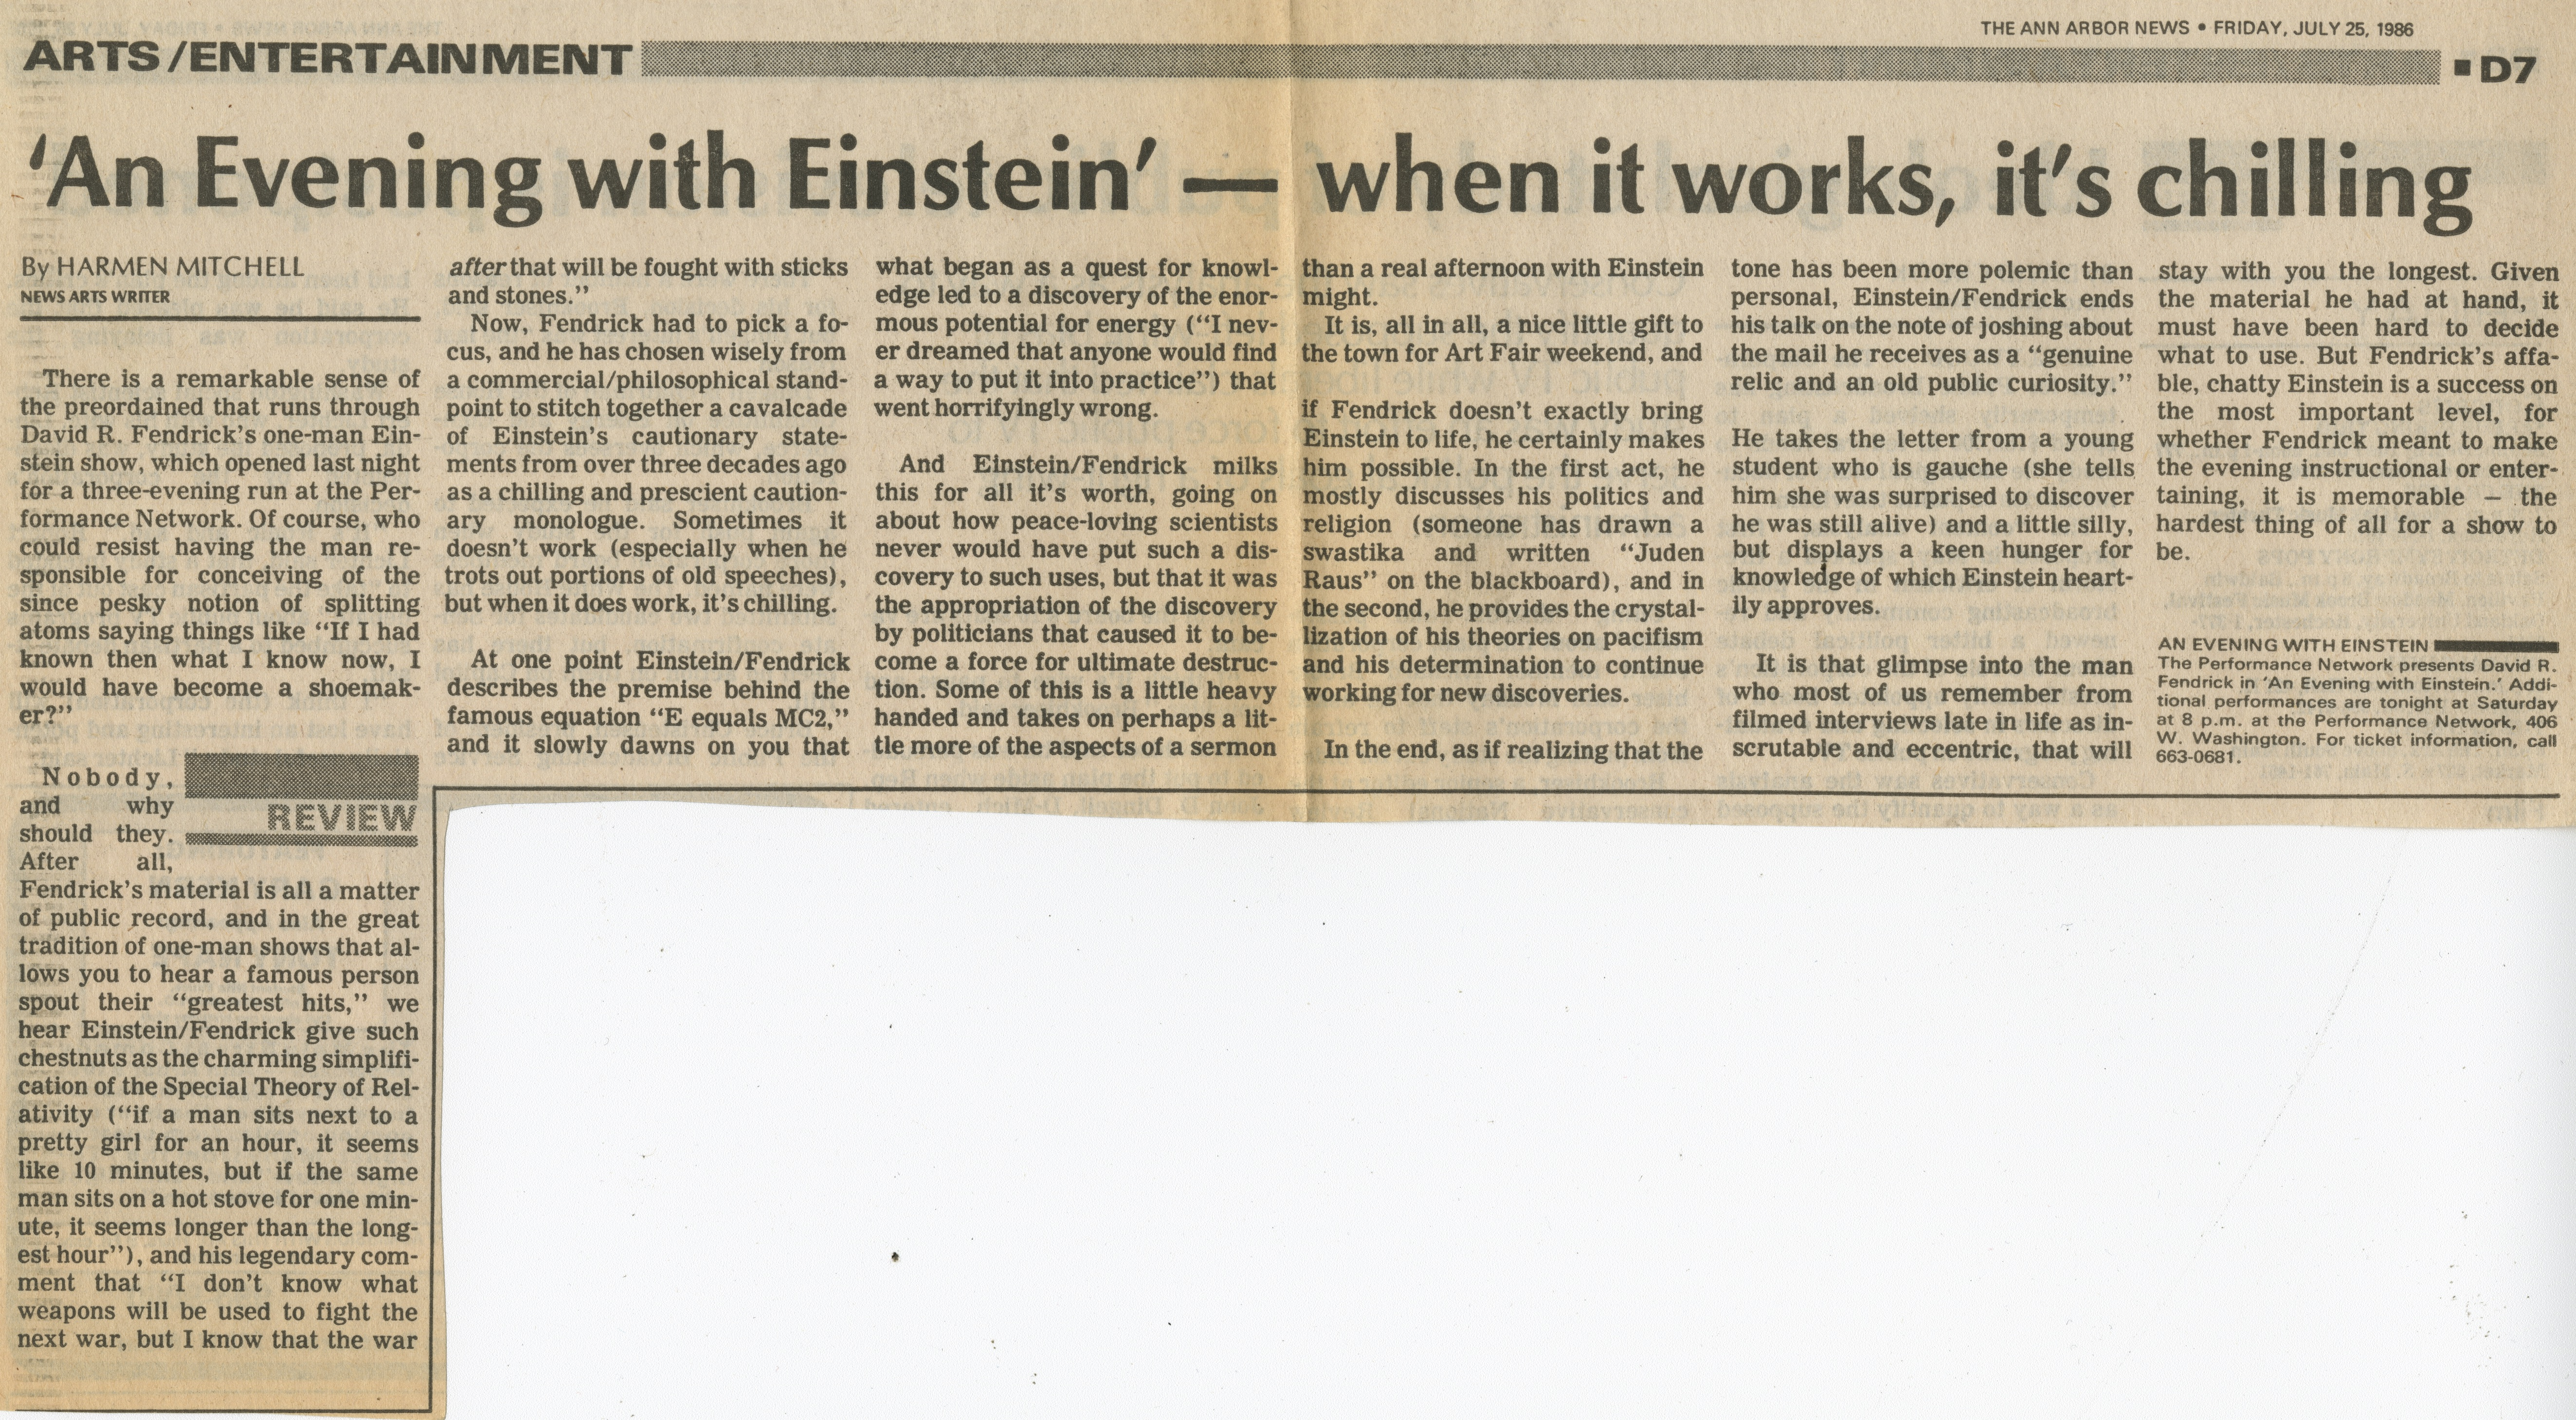 'An Evening with Einstein' - when it works, it's chilling image